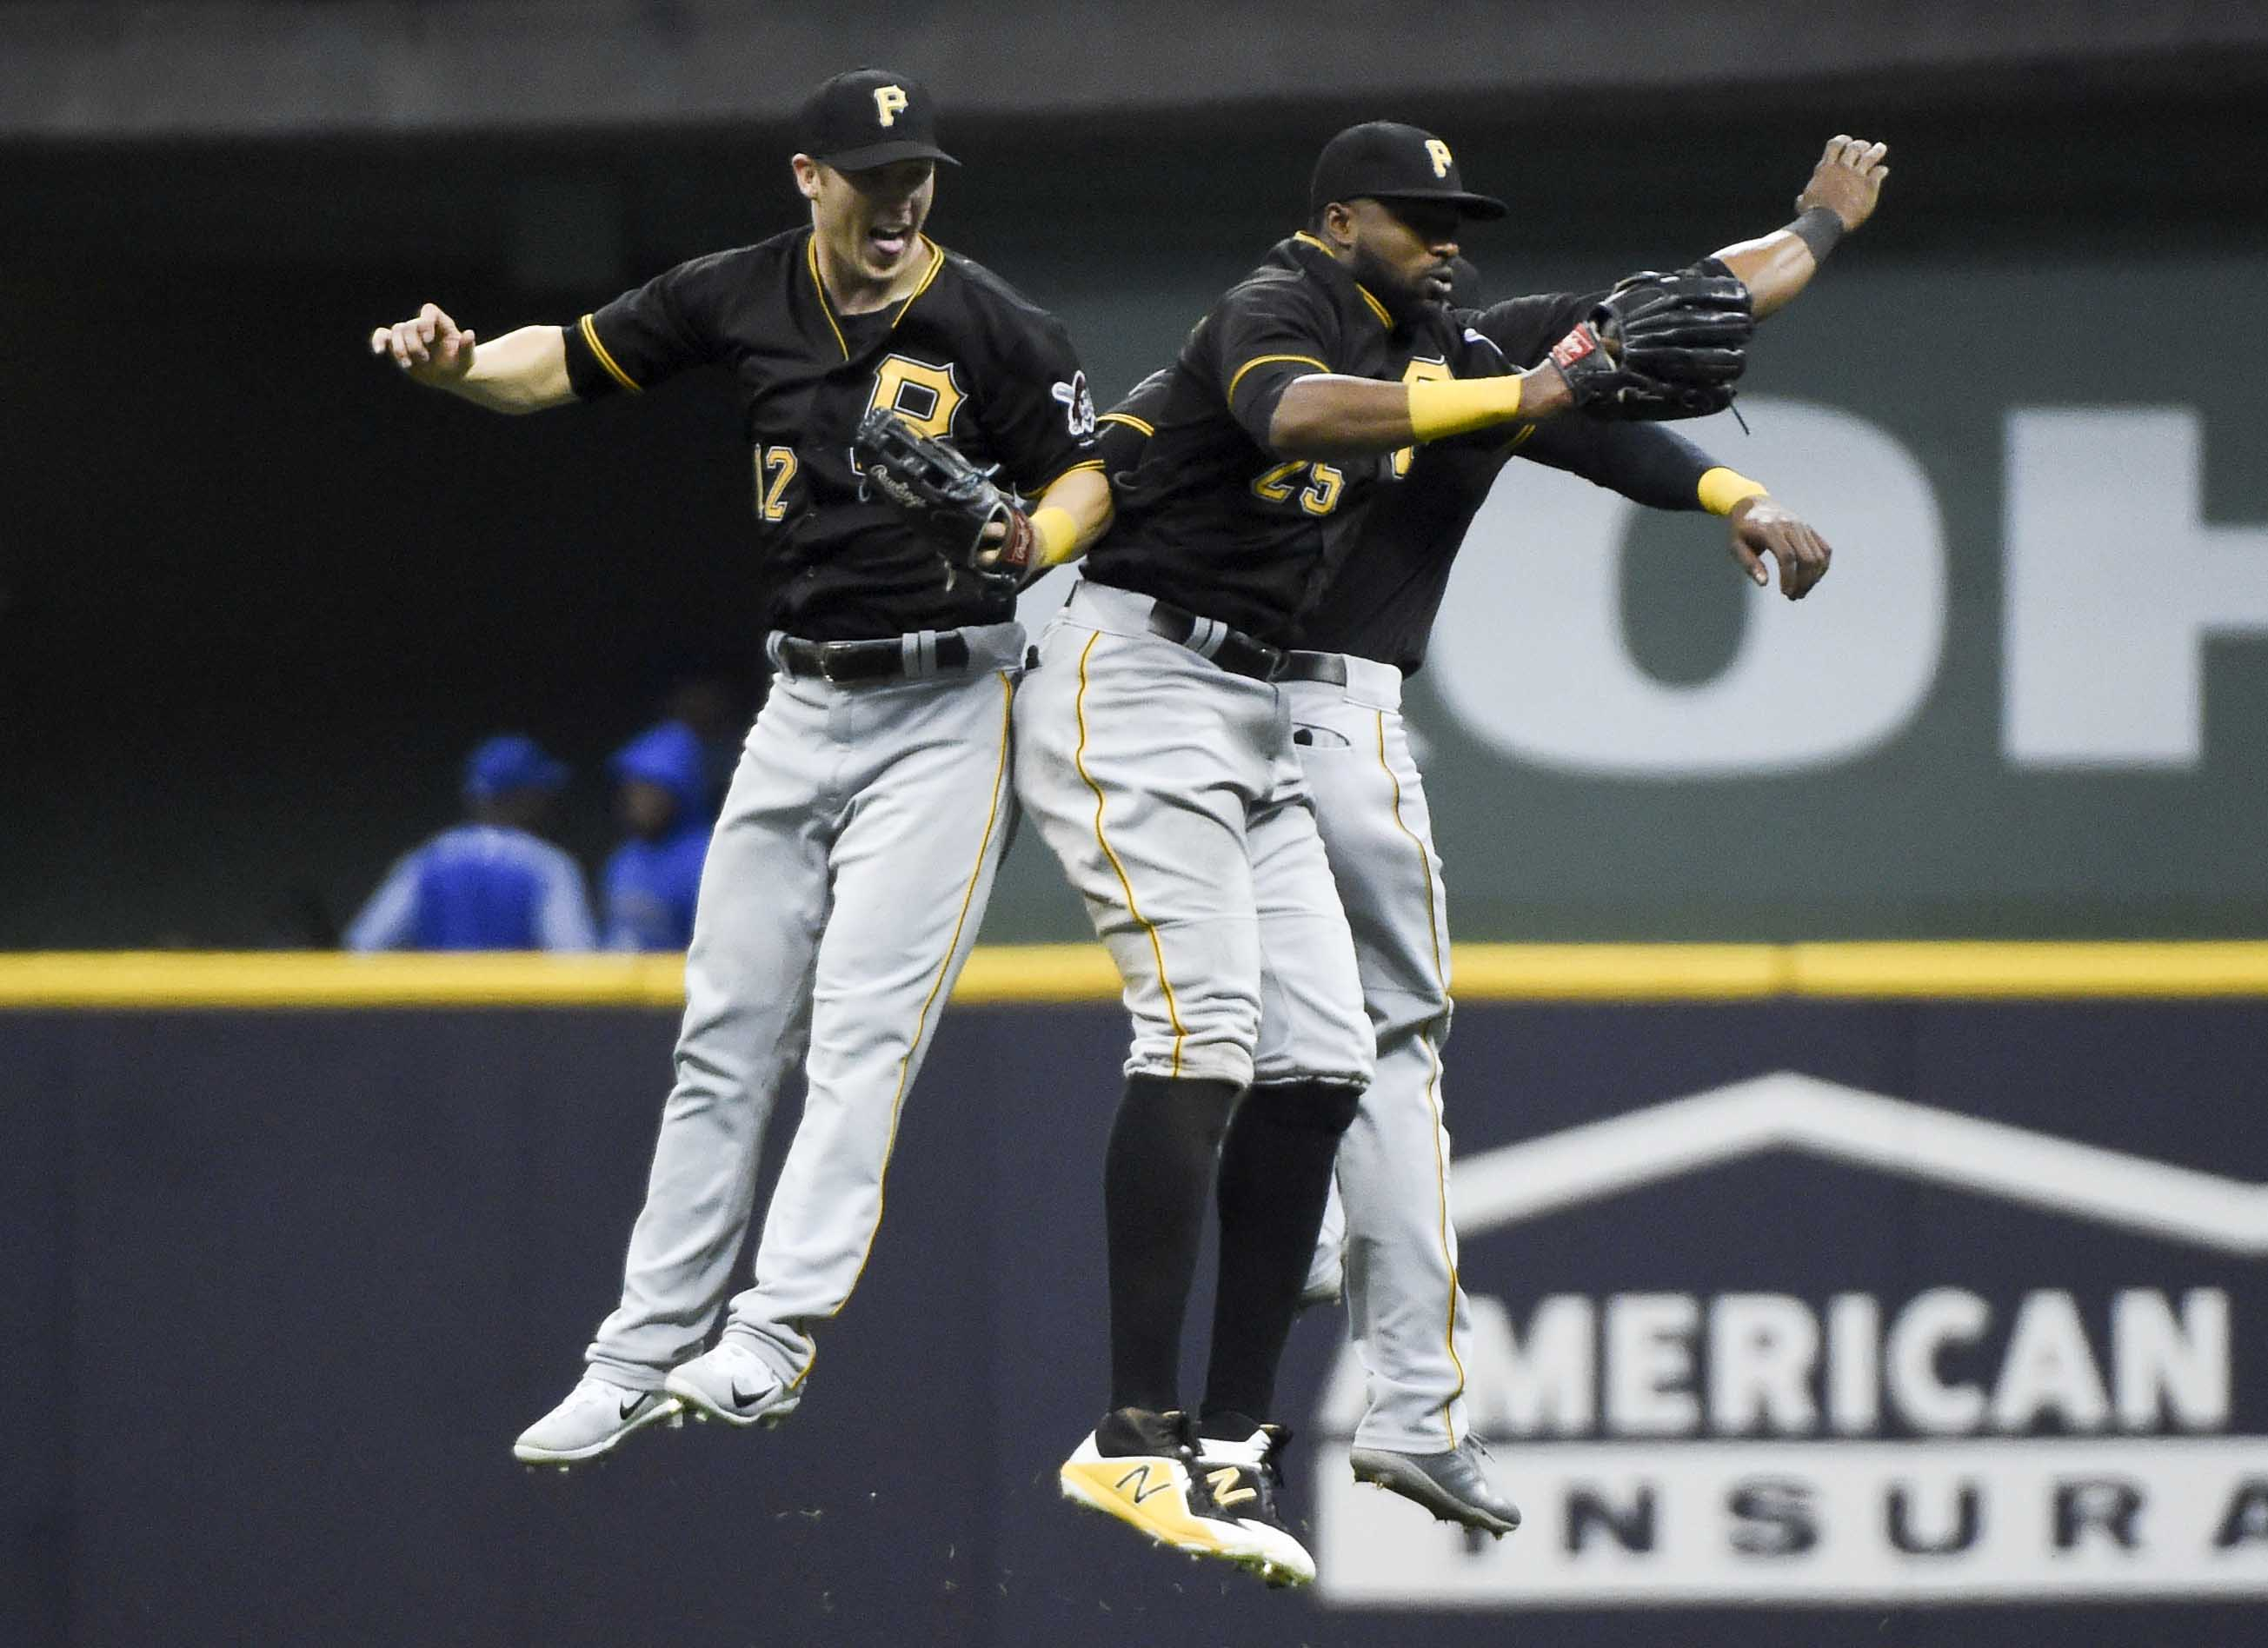 The Pittsburgh Pirates should put the best players on the field, period.